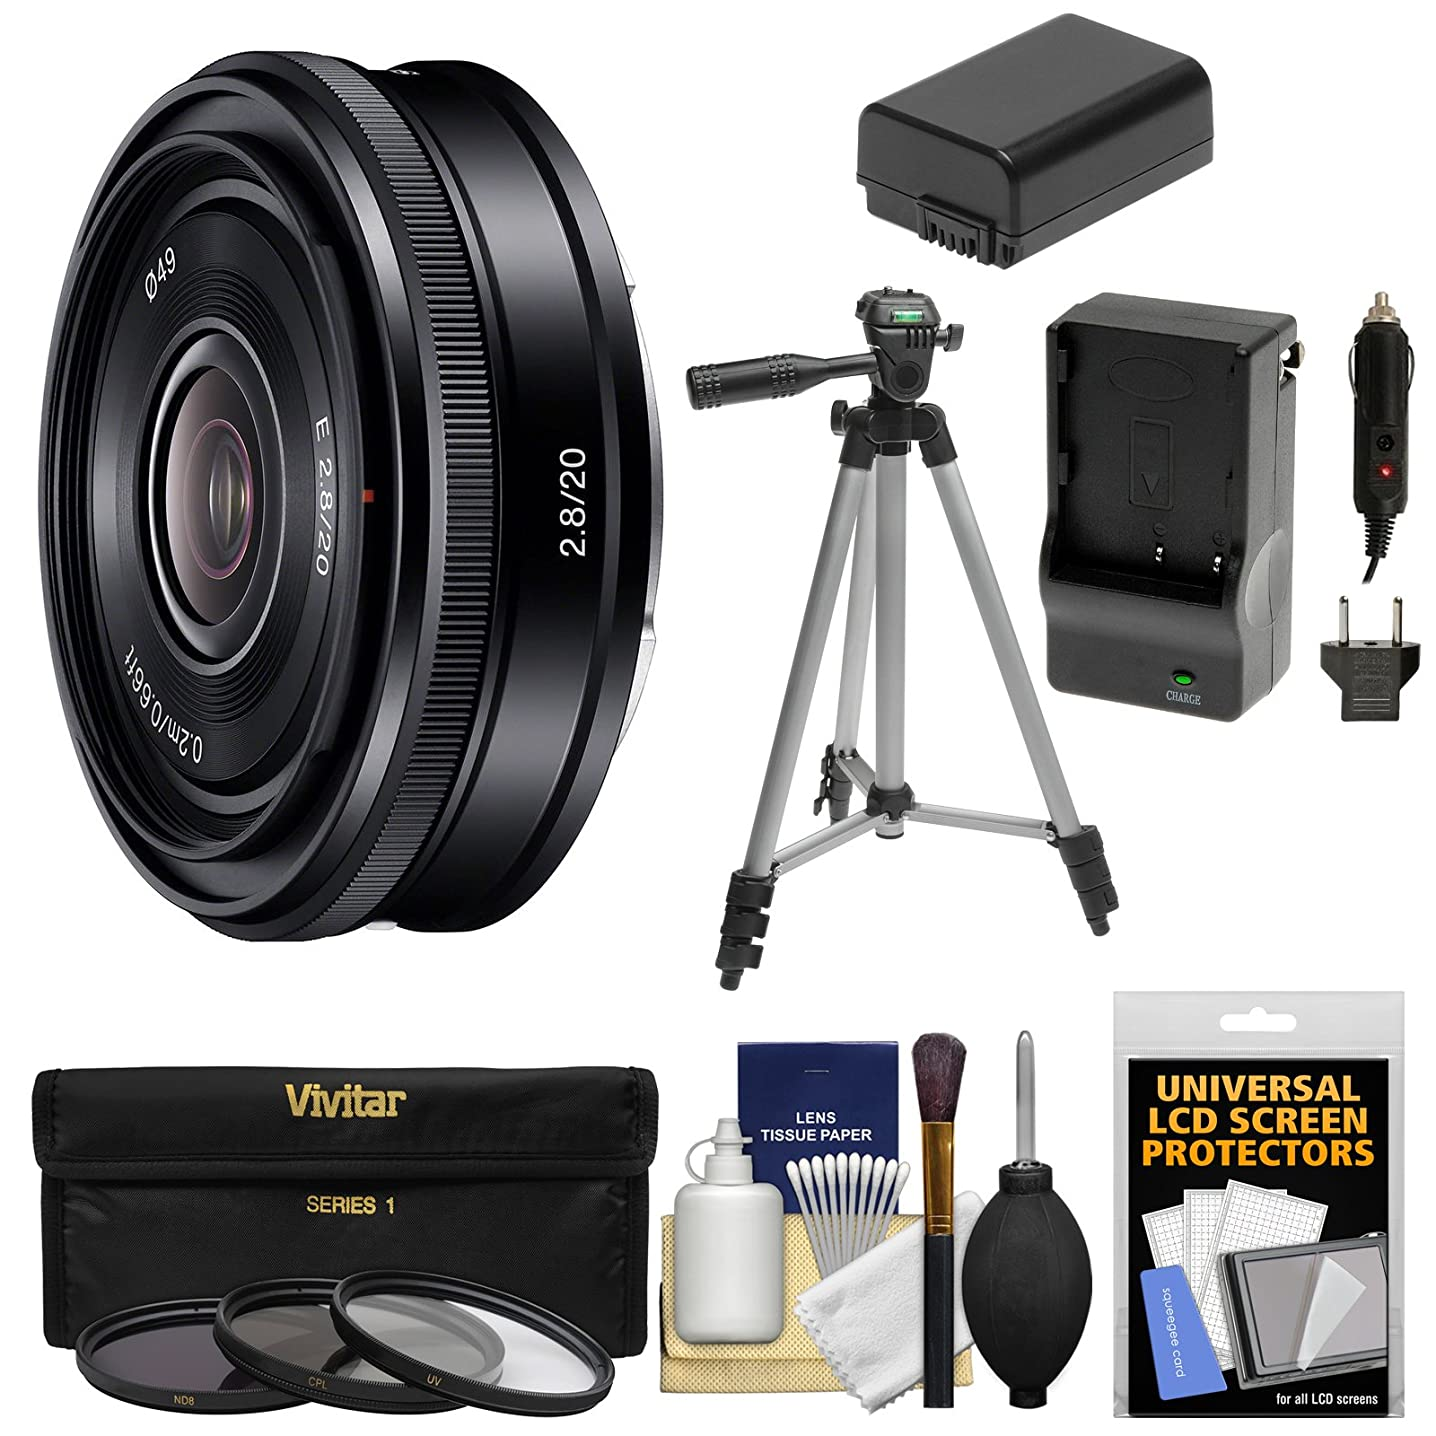 Sony Alpha E-Mount 20mm f/2.8 Wide-Angle Pancake Lens + 3 Filters + Tripod + NP-FW50 Battery/Charger Kit for A7, A7R, A7S Mark II, A5100, A6000, A6300